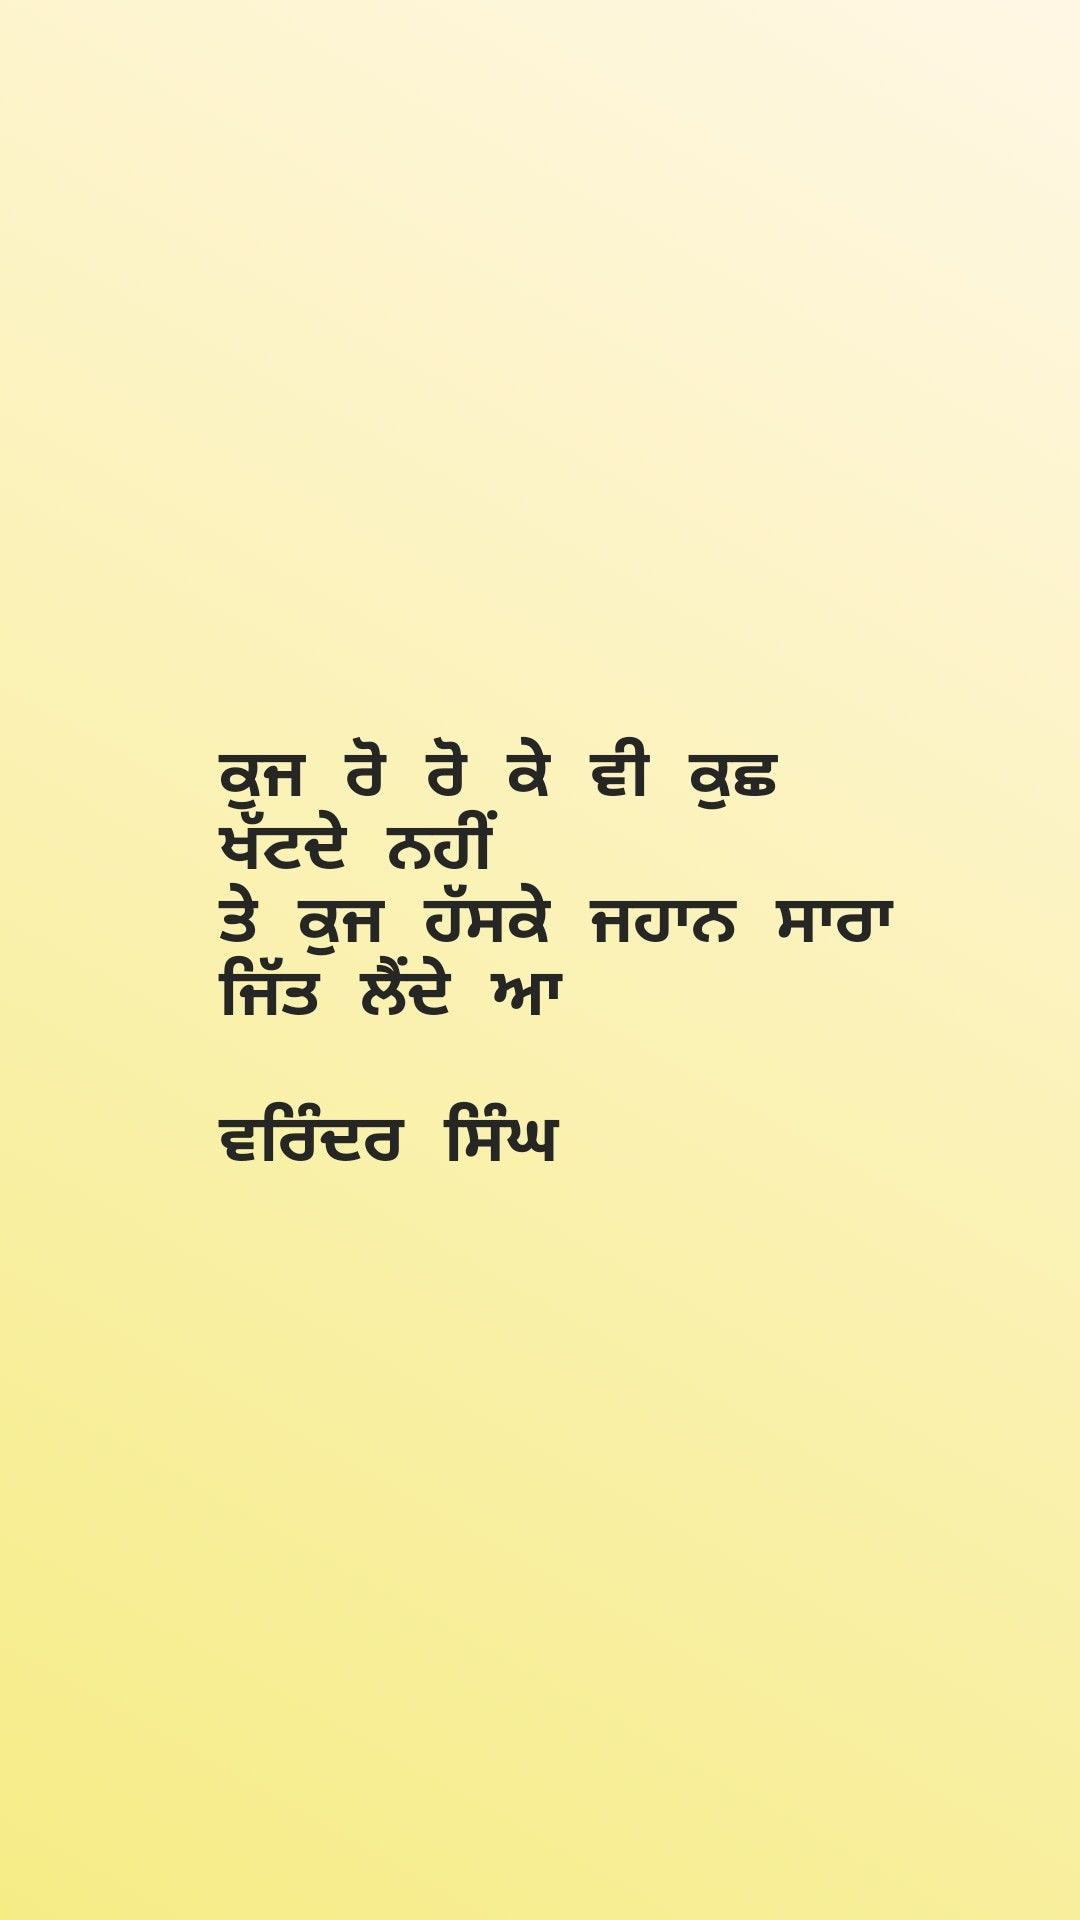 Pin by Varinder singh on ਵੈਲੀ | Punjabi quotes, Quotes for